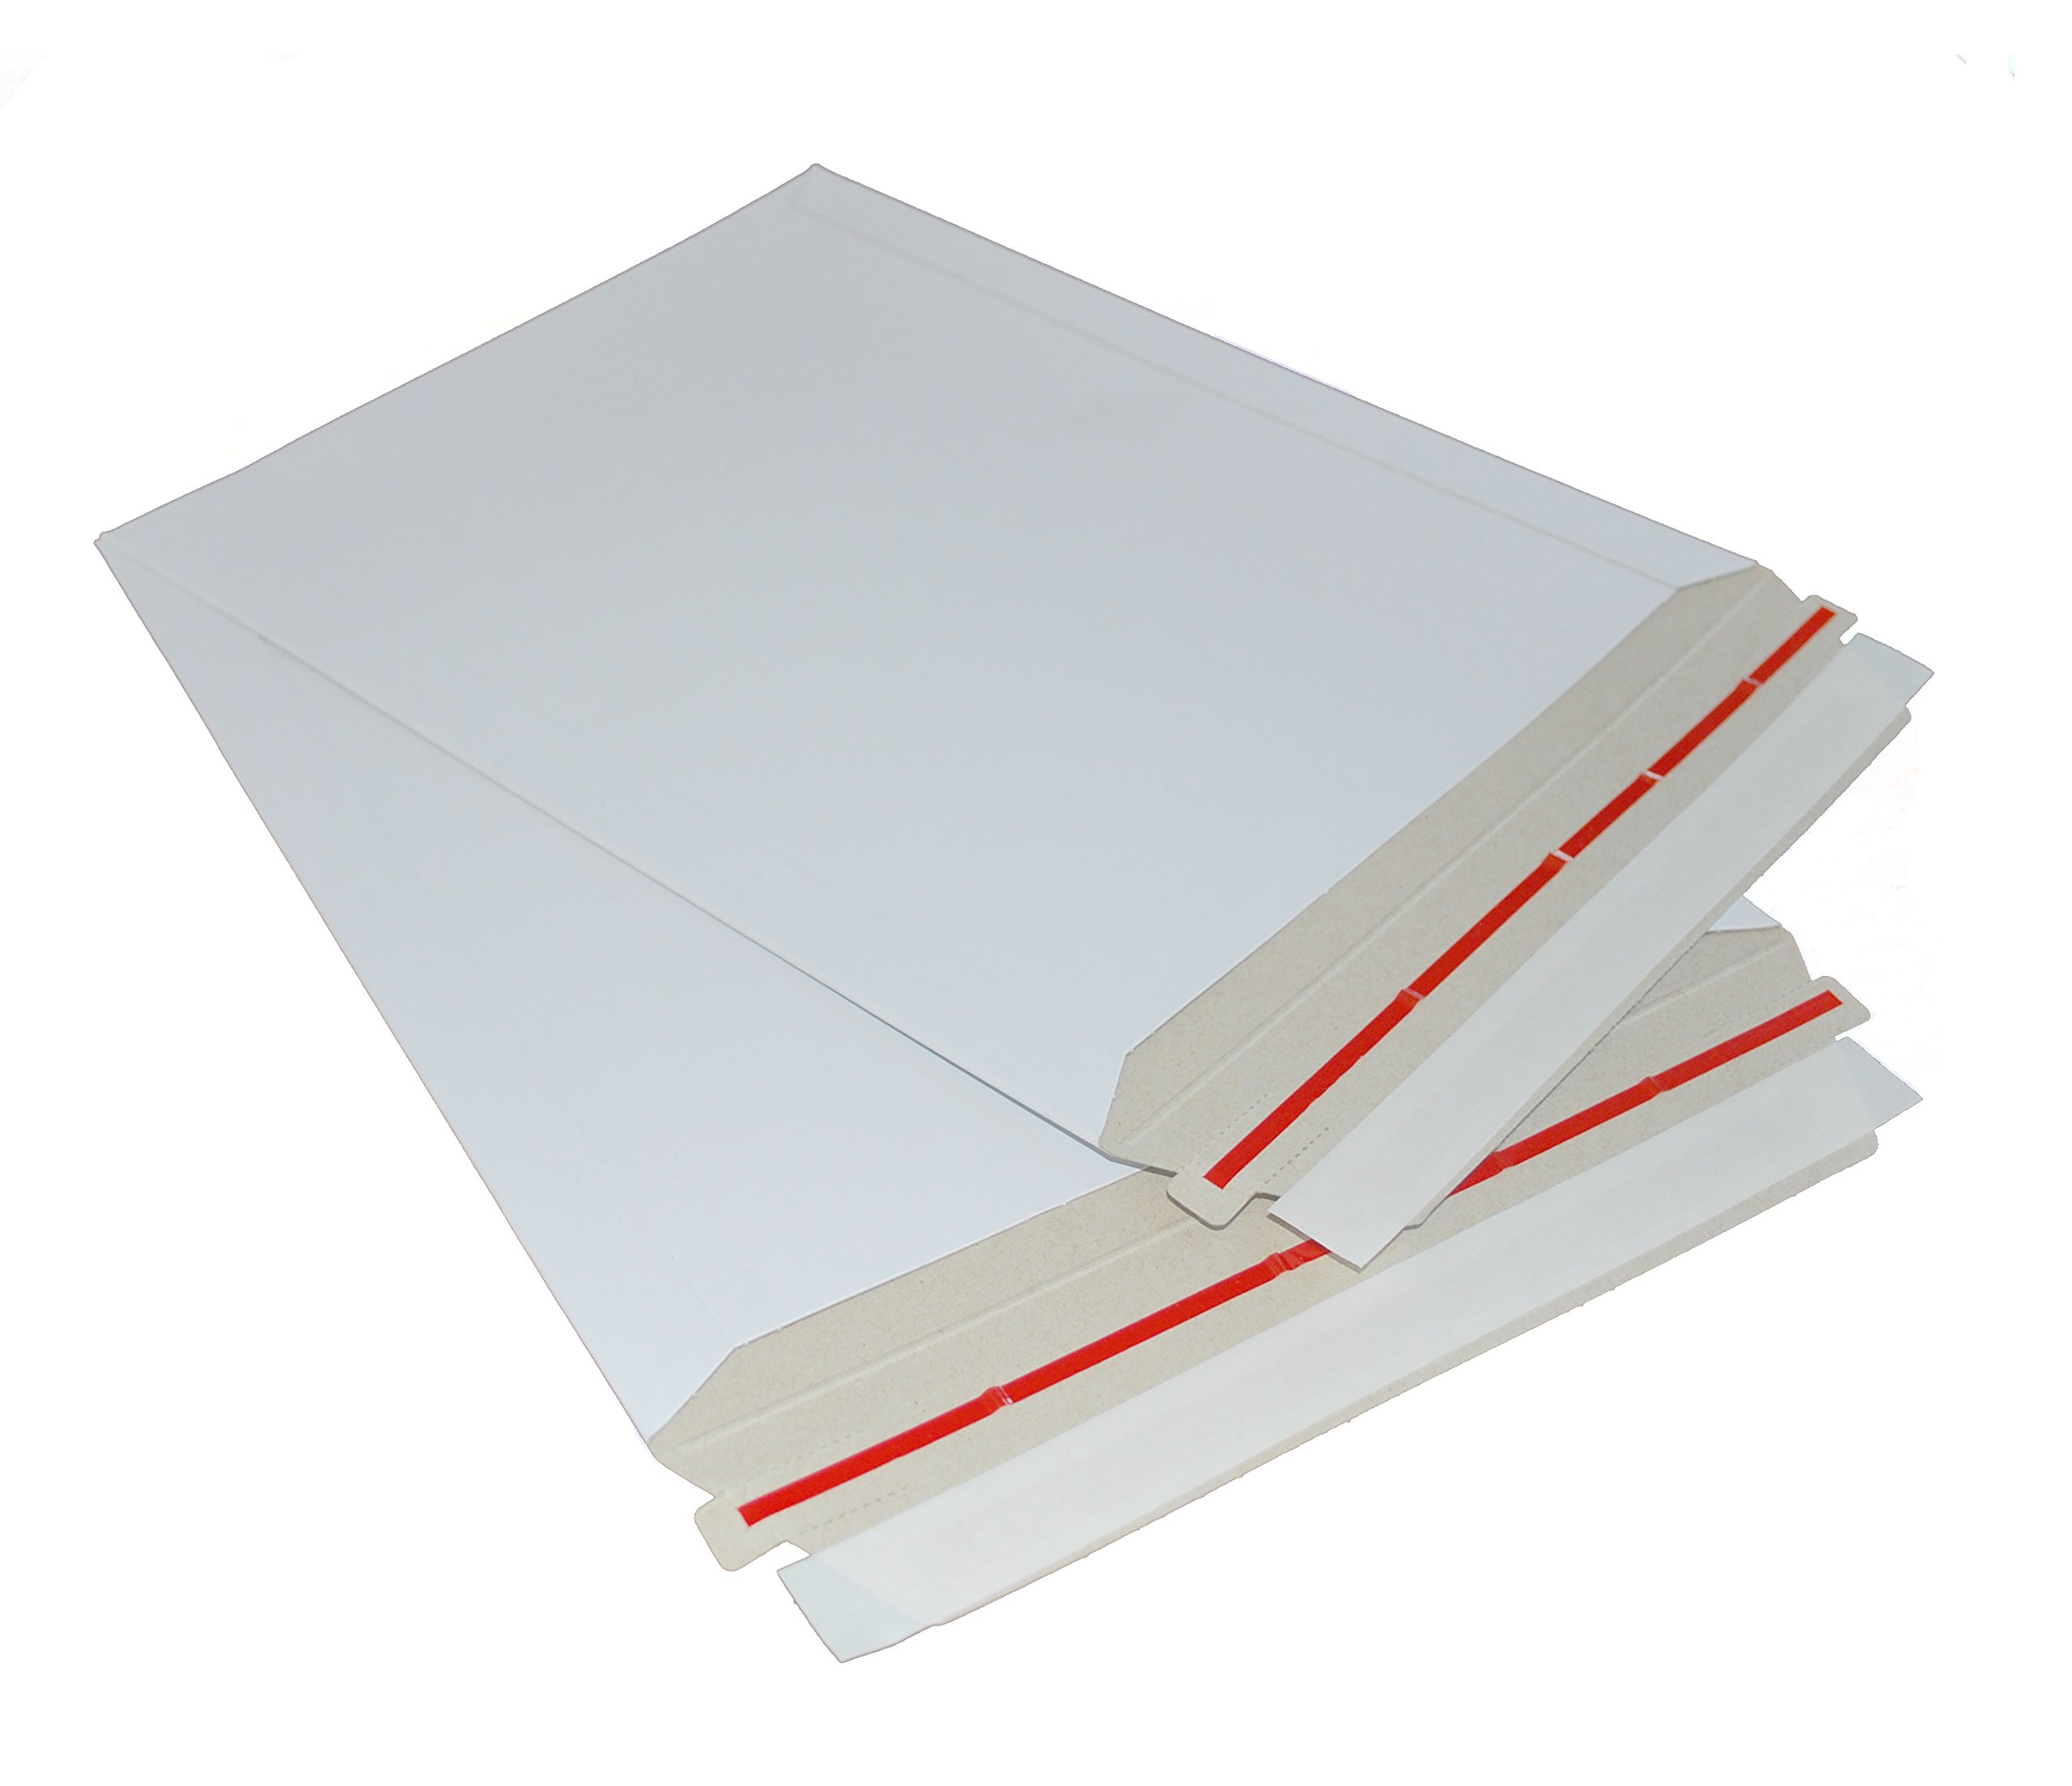 100 - 9.75x12.25 RIGID PHOTO MAILERS FLATS BY VALUEMAILERS